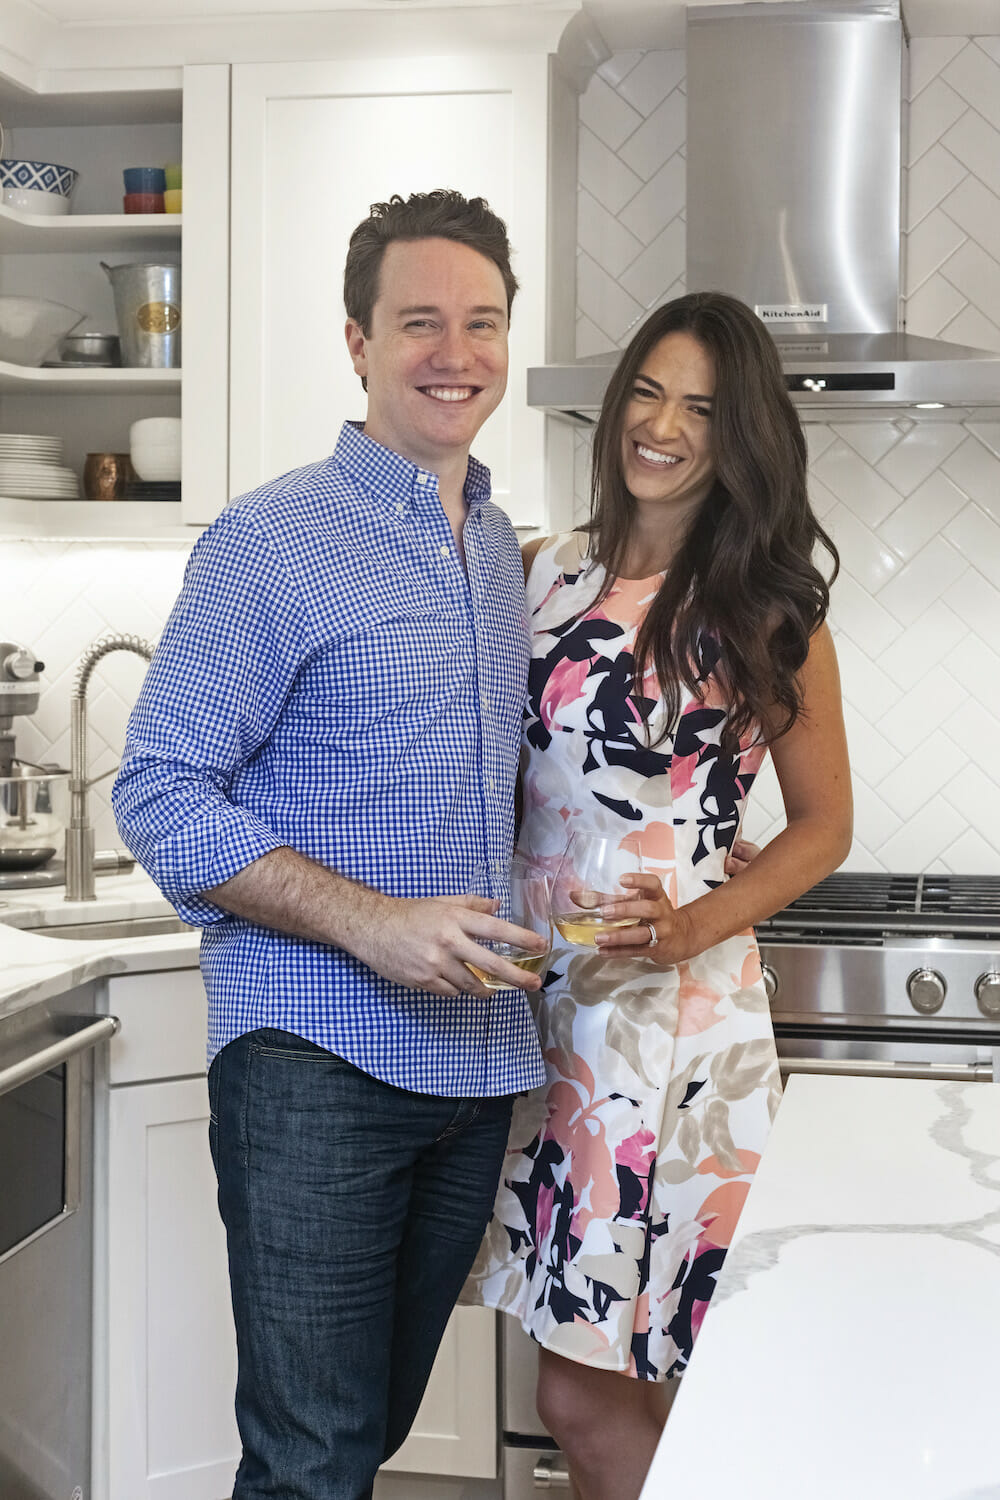 Husband and wife standing in newly renovated kitchen with quartz countertops